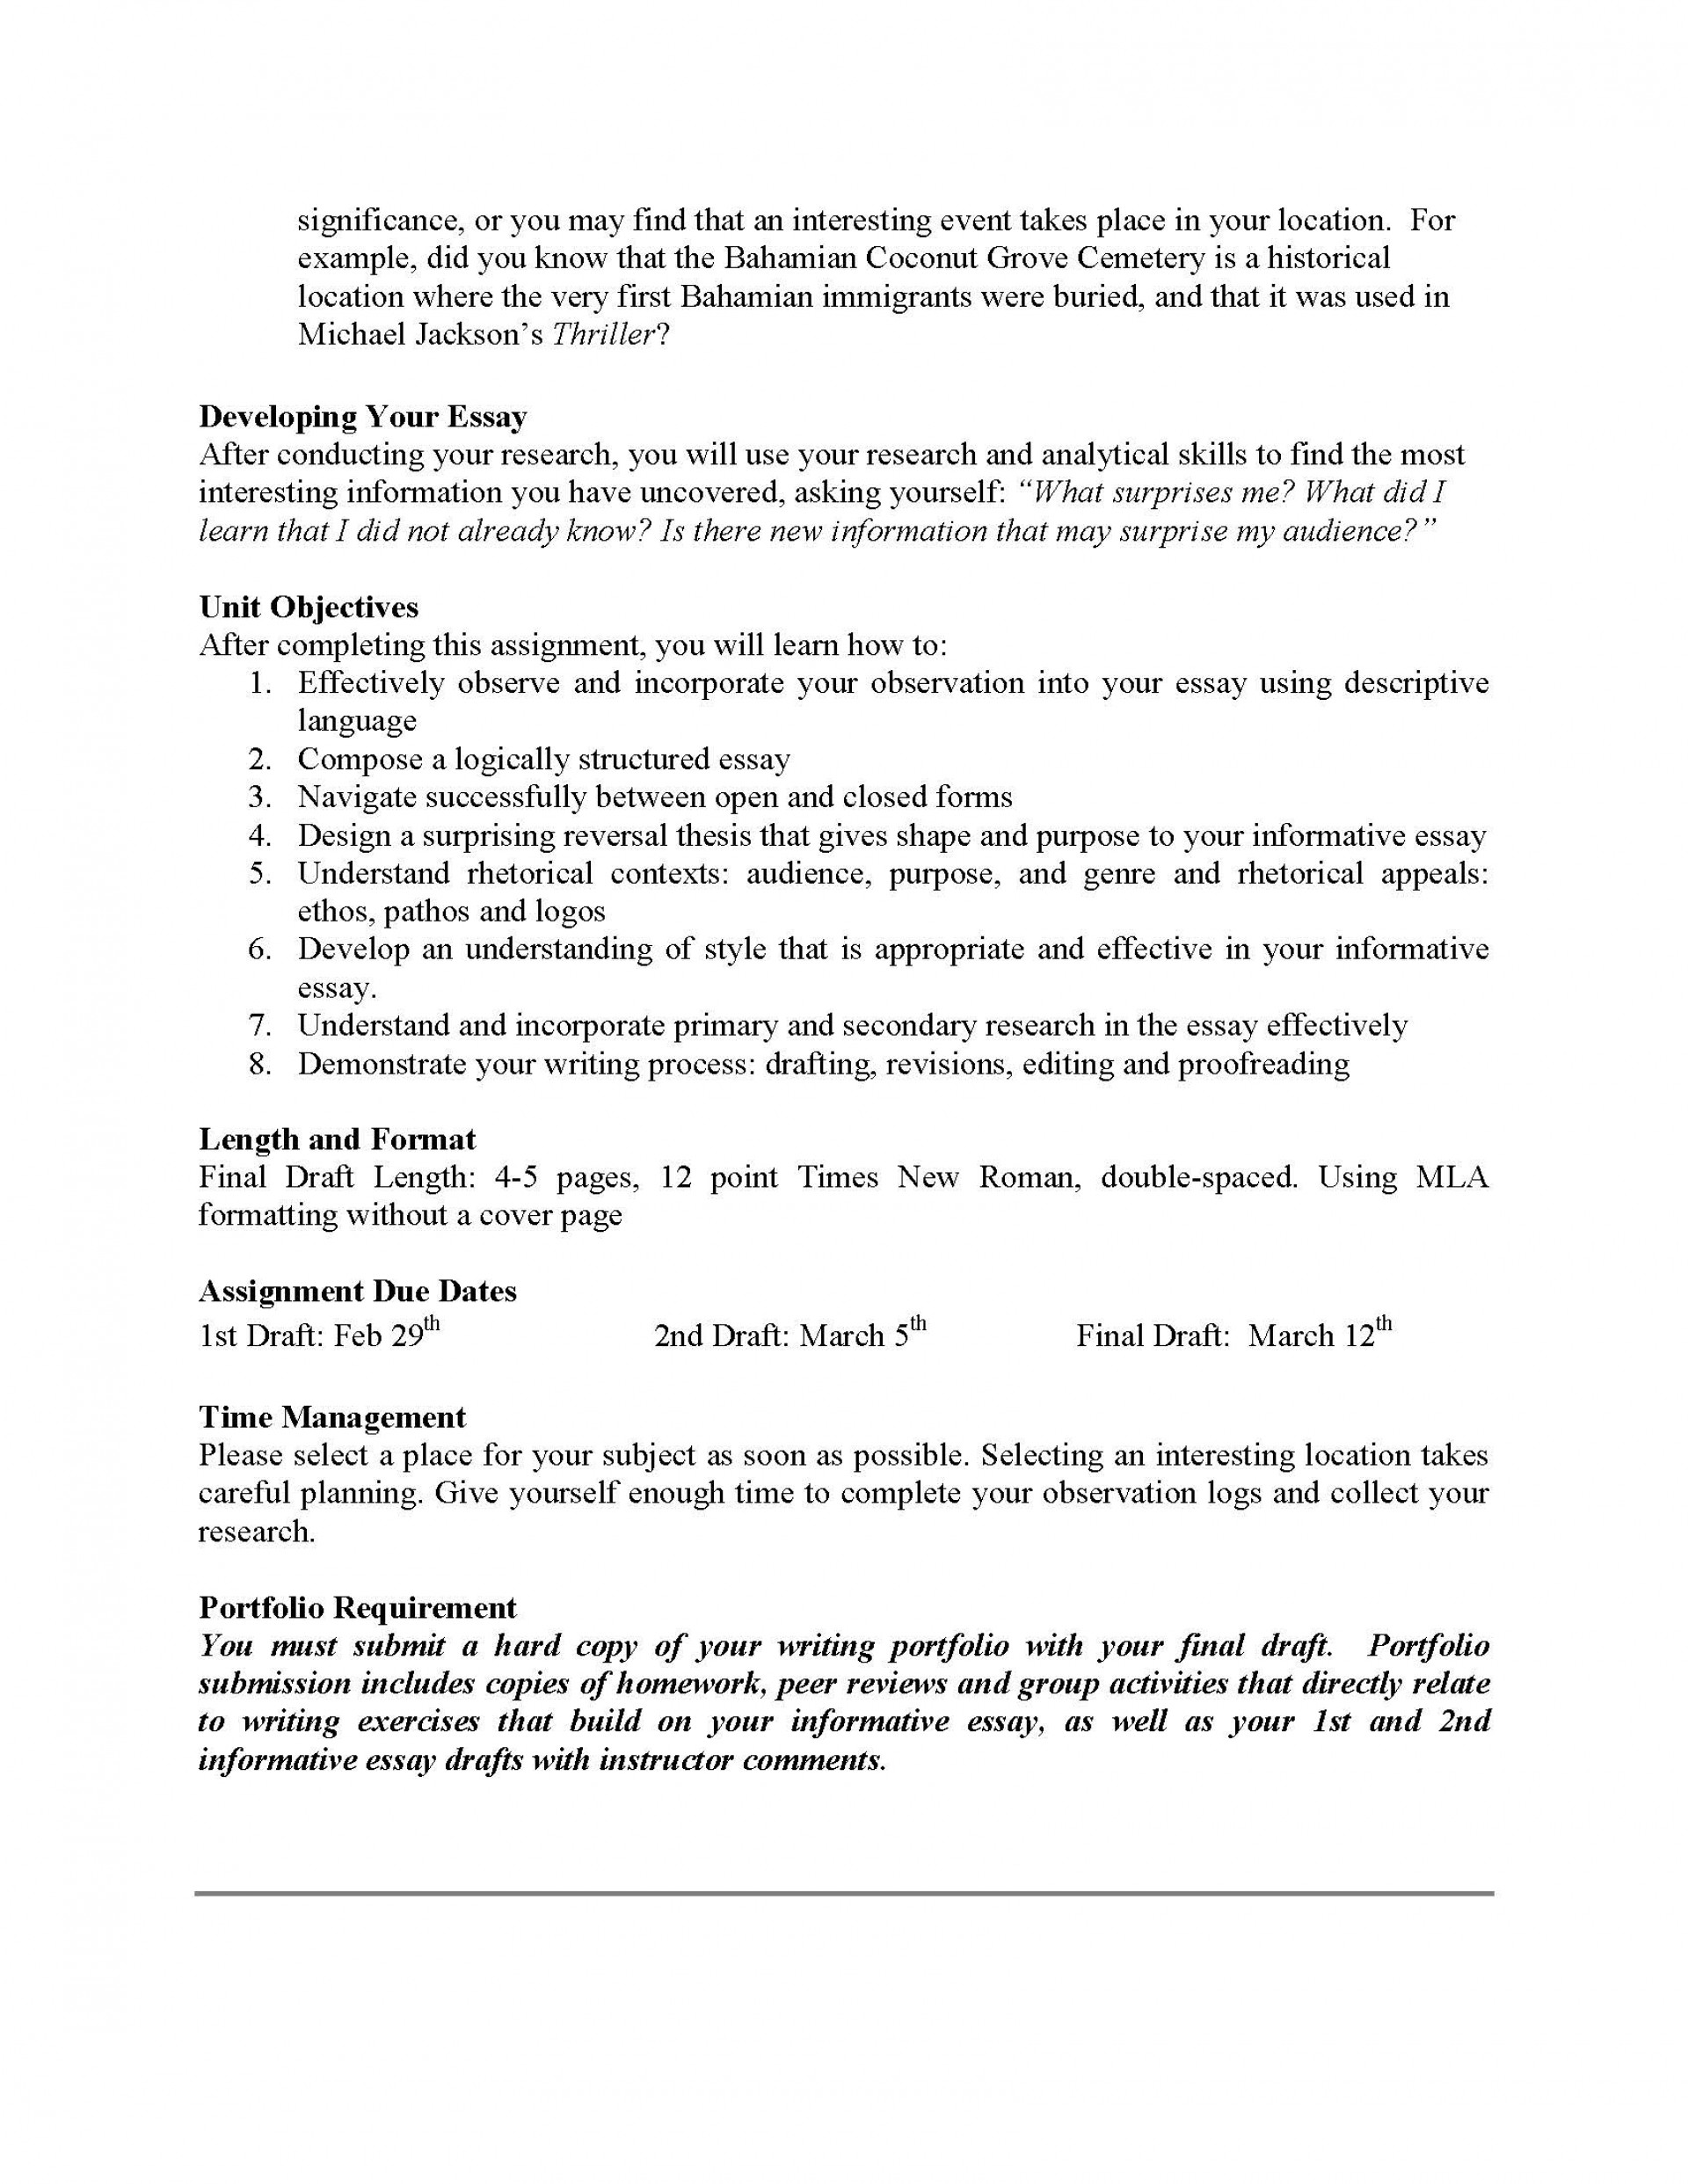 011 Essay Example Informational Informative Unit Assignment Page 2 Unforgettable Rubric 4th Grade Outline Explanatory Definition 1920